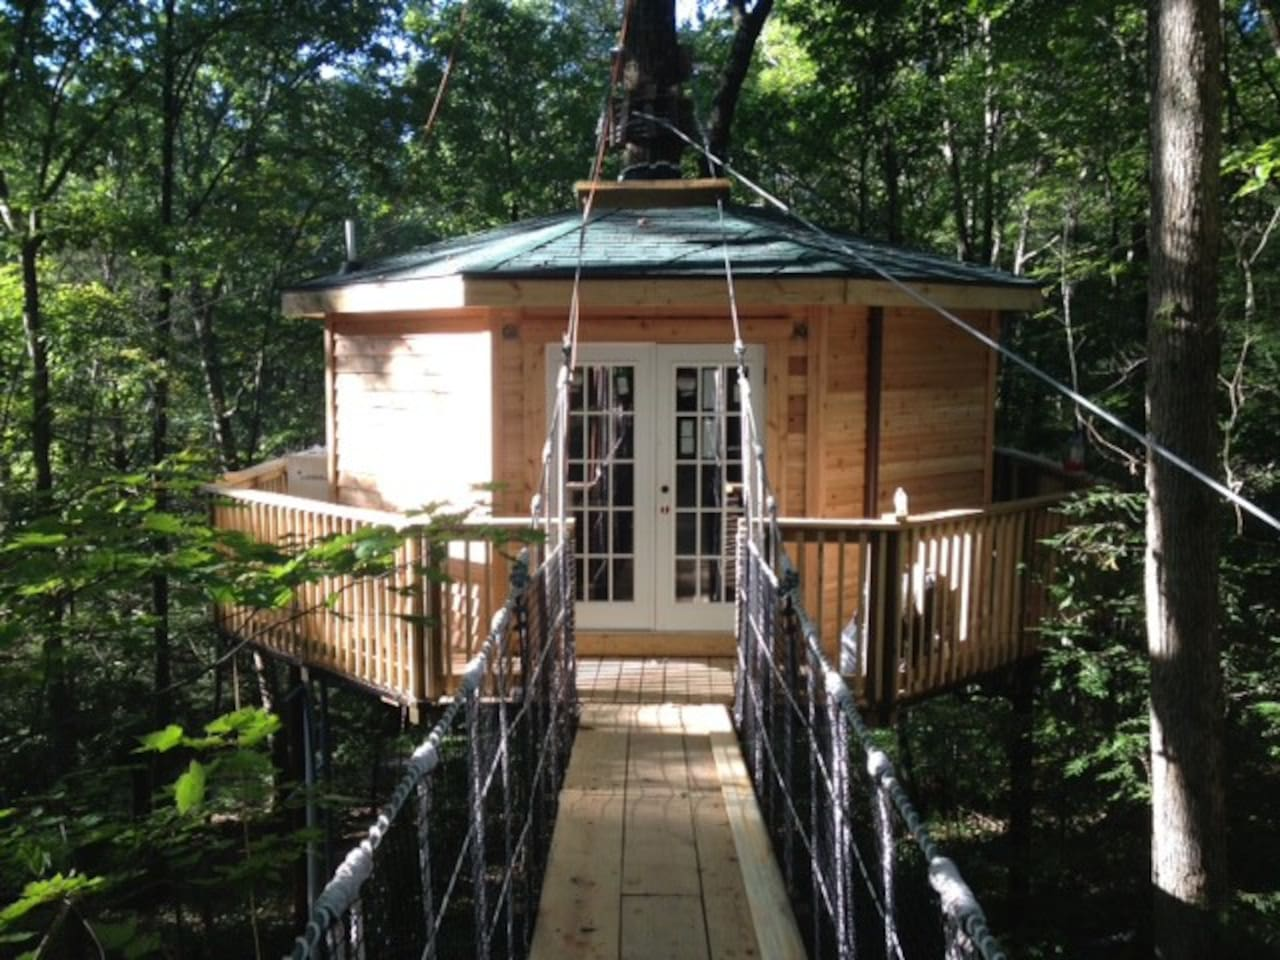 Holly Rock Treehouse in West Virginia